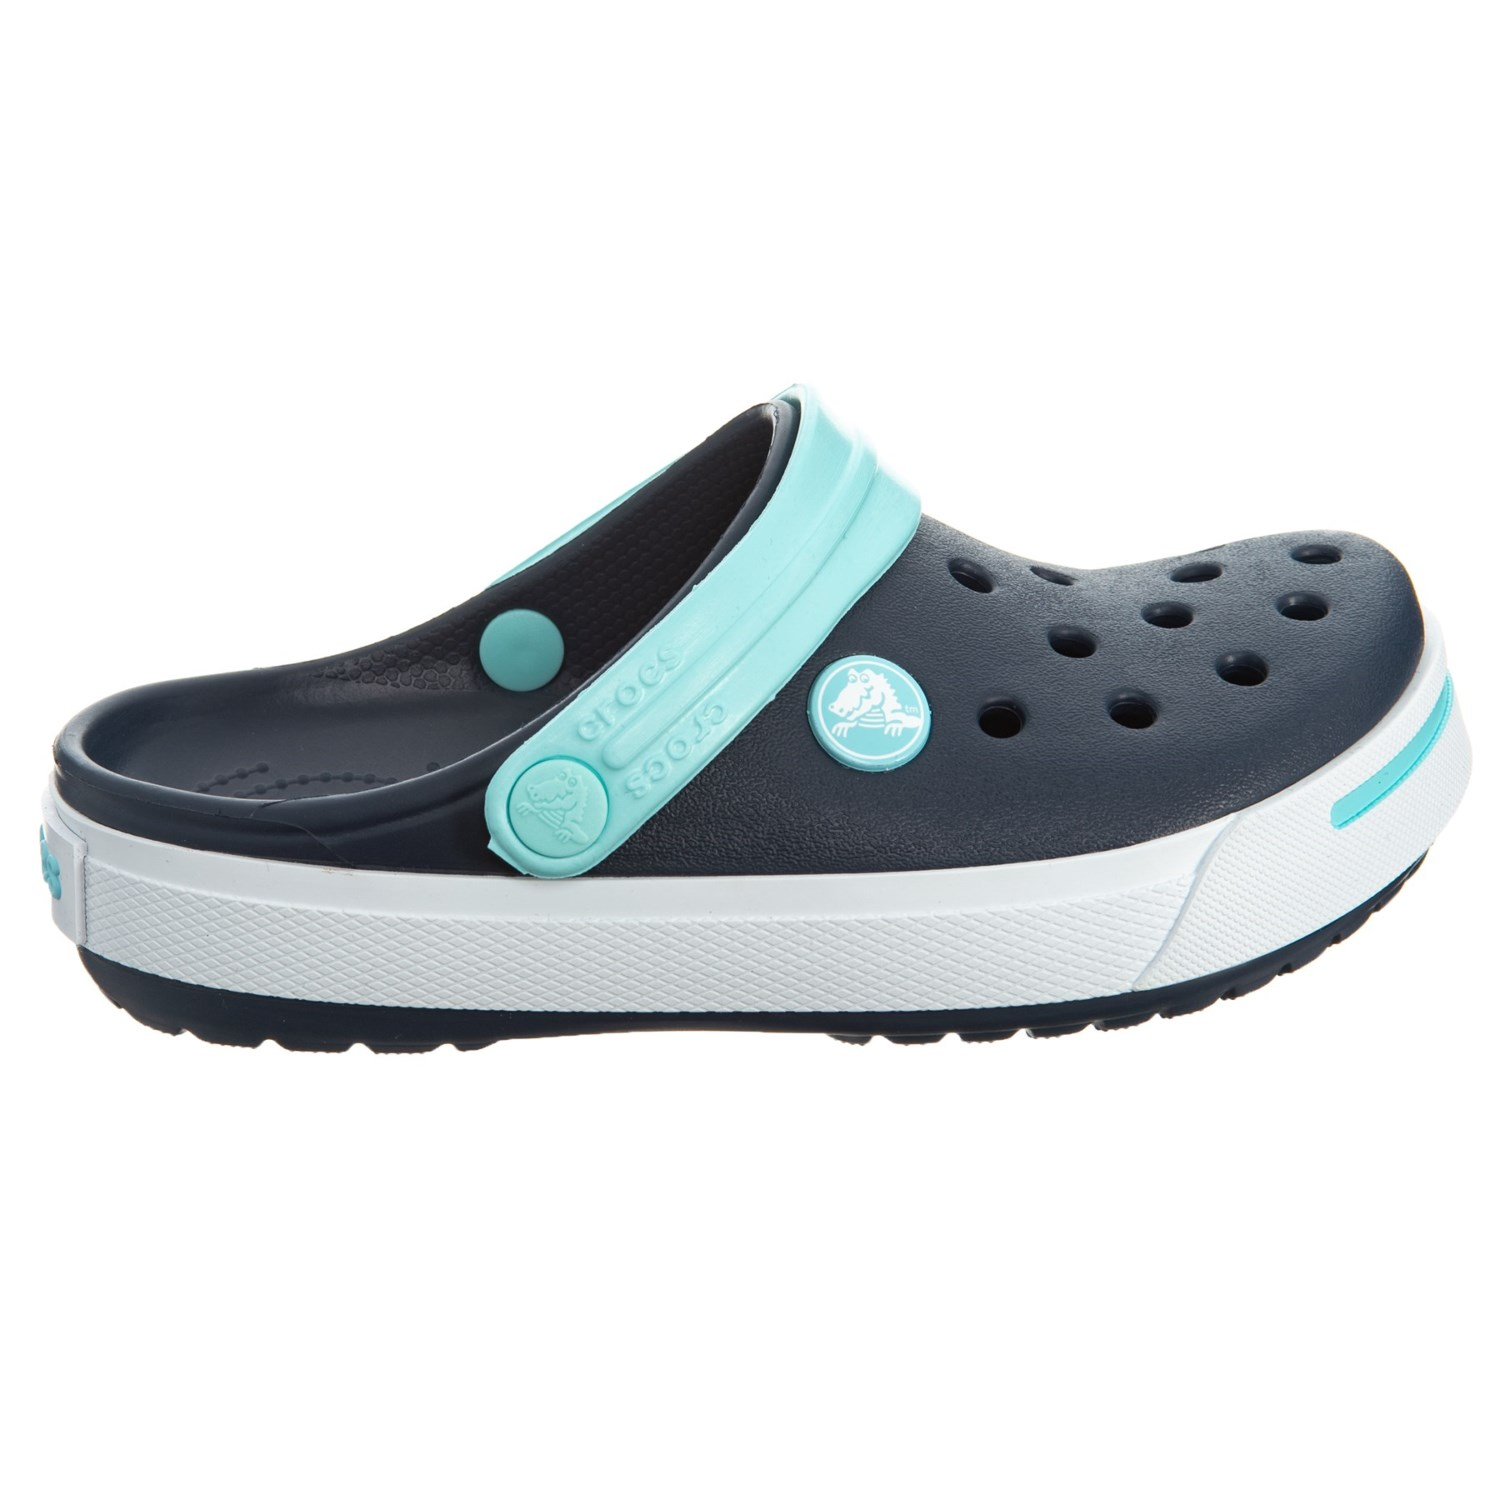 c12830295c Crocs Sea Blue-Lime Crocband II Clogs (For Boys) - Save 42%